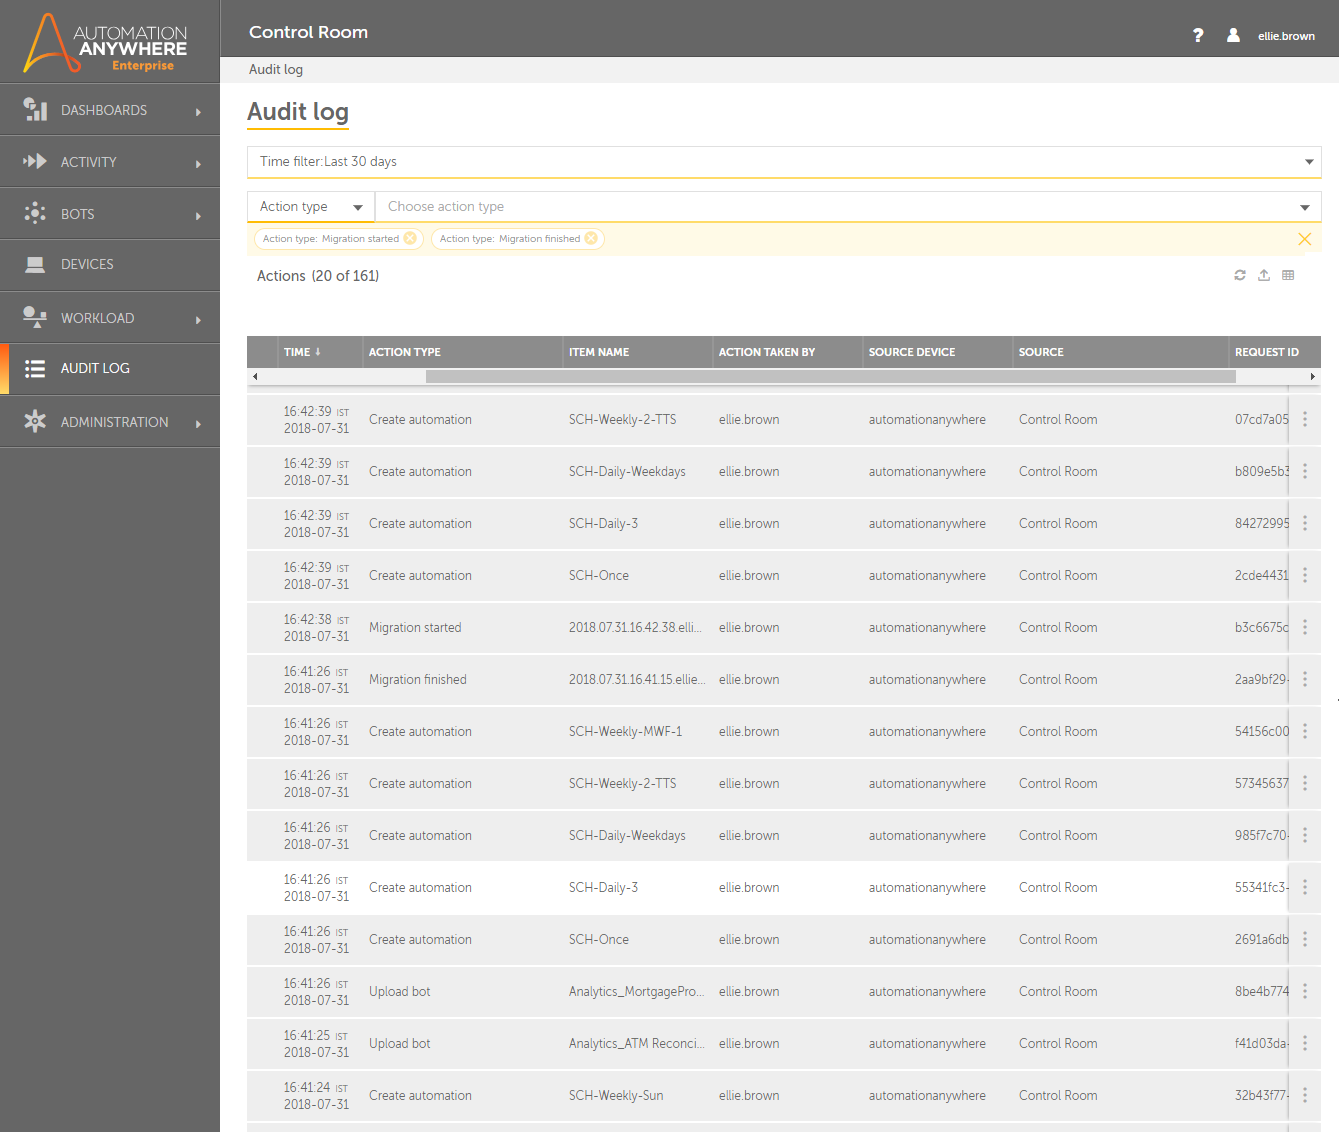 Audit Log showing details of each entity that is migrated